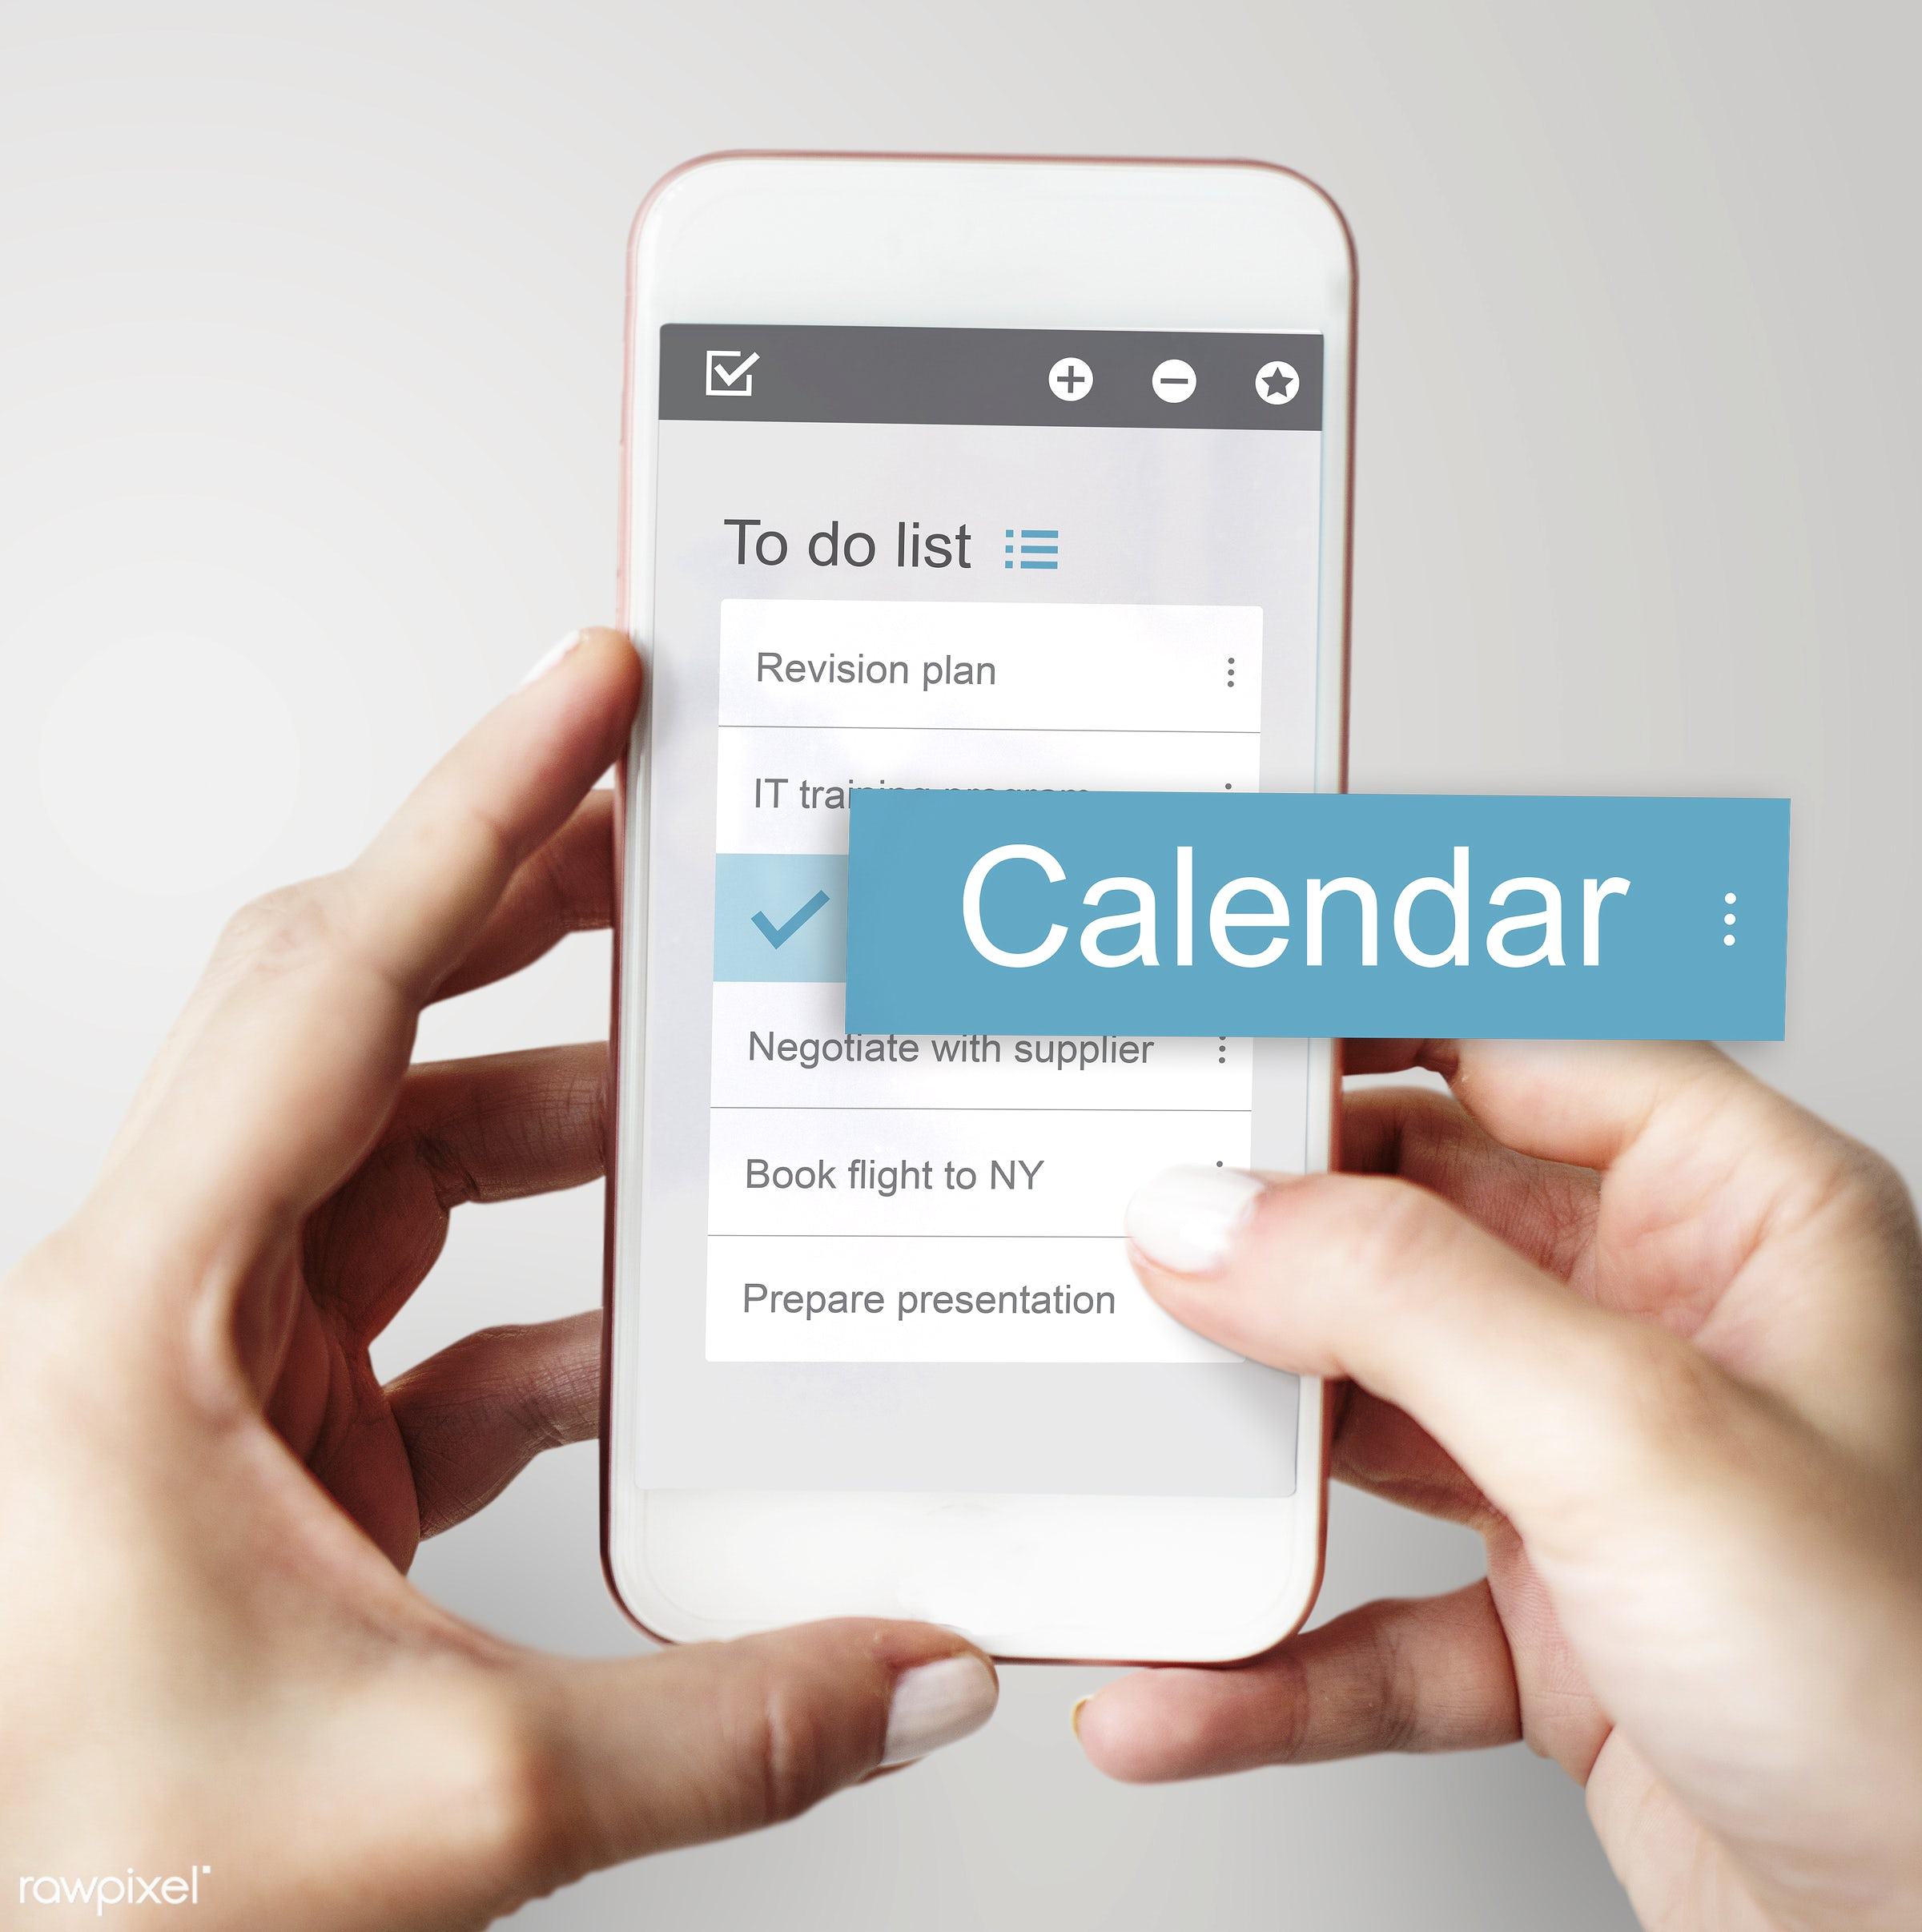 list, organize, reminder, agenda, app, appointment, browsing, business, calendar, chat, checklist, corporate, device,...